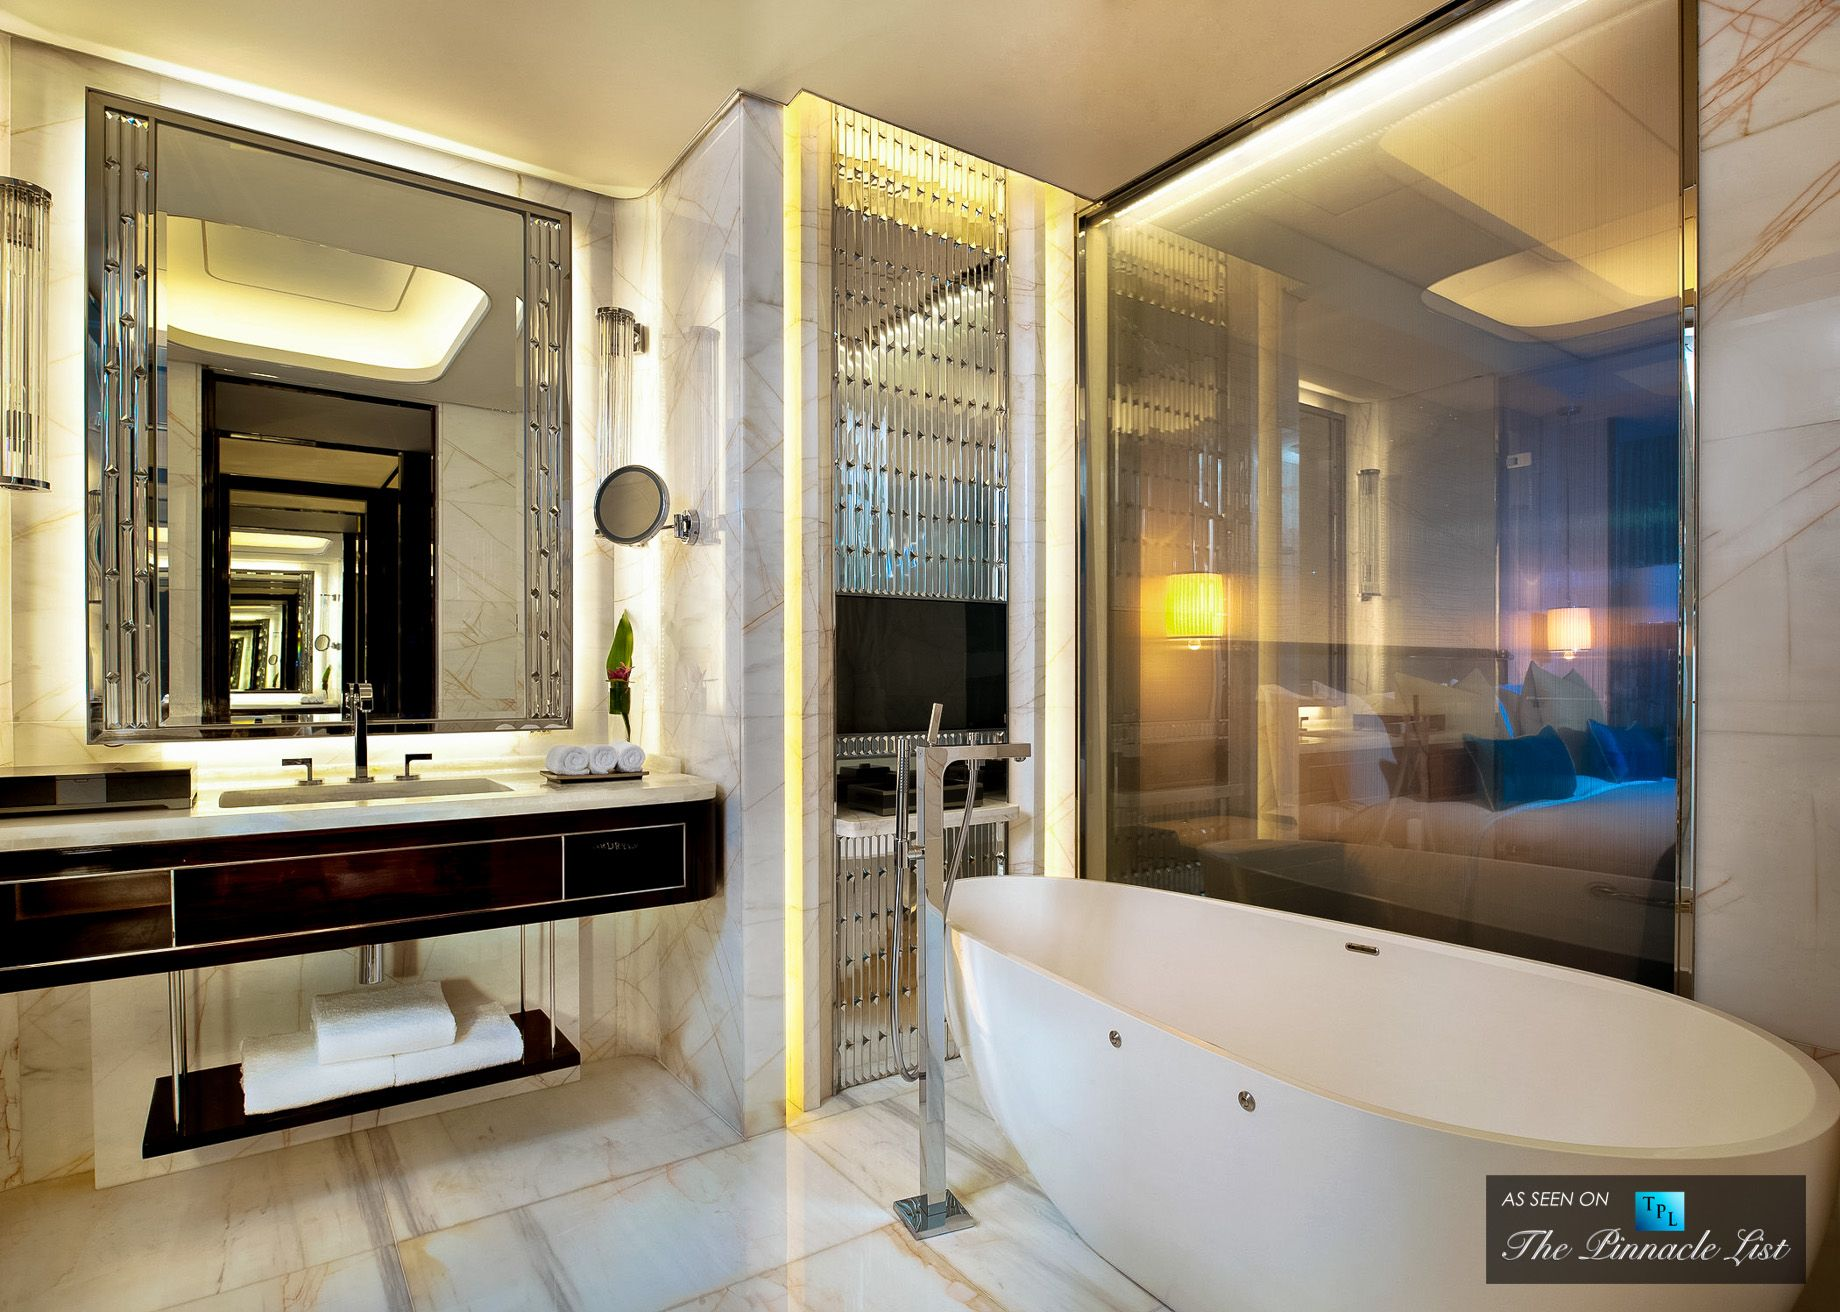 St regis luxury hotel shenzhen china deluxe bathroom for Luxury toilet design